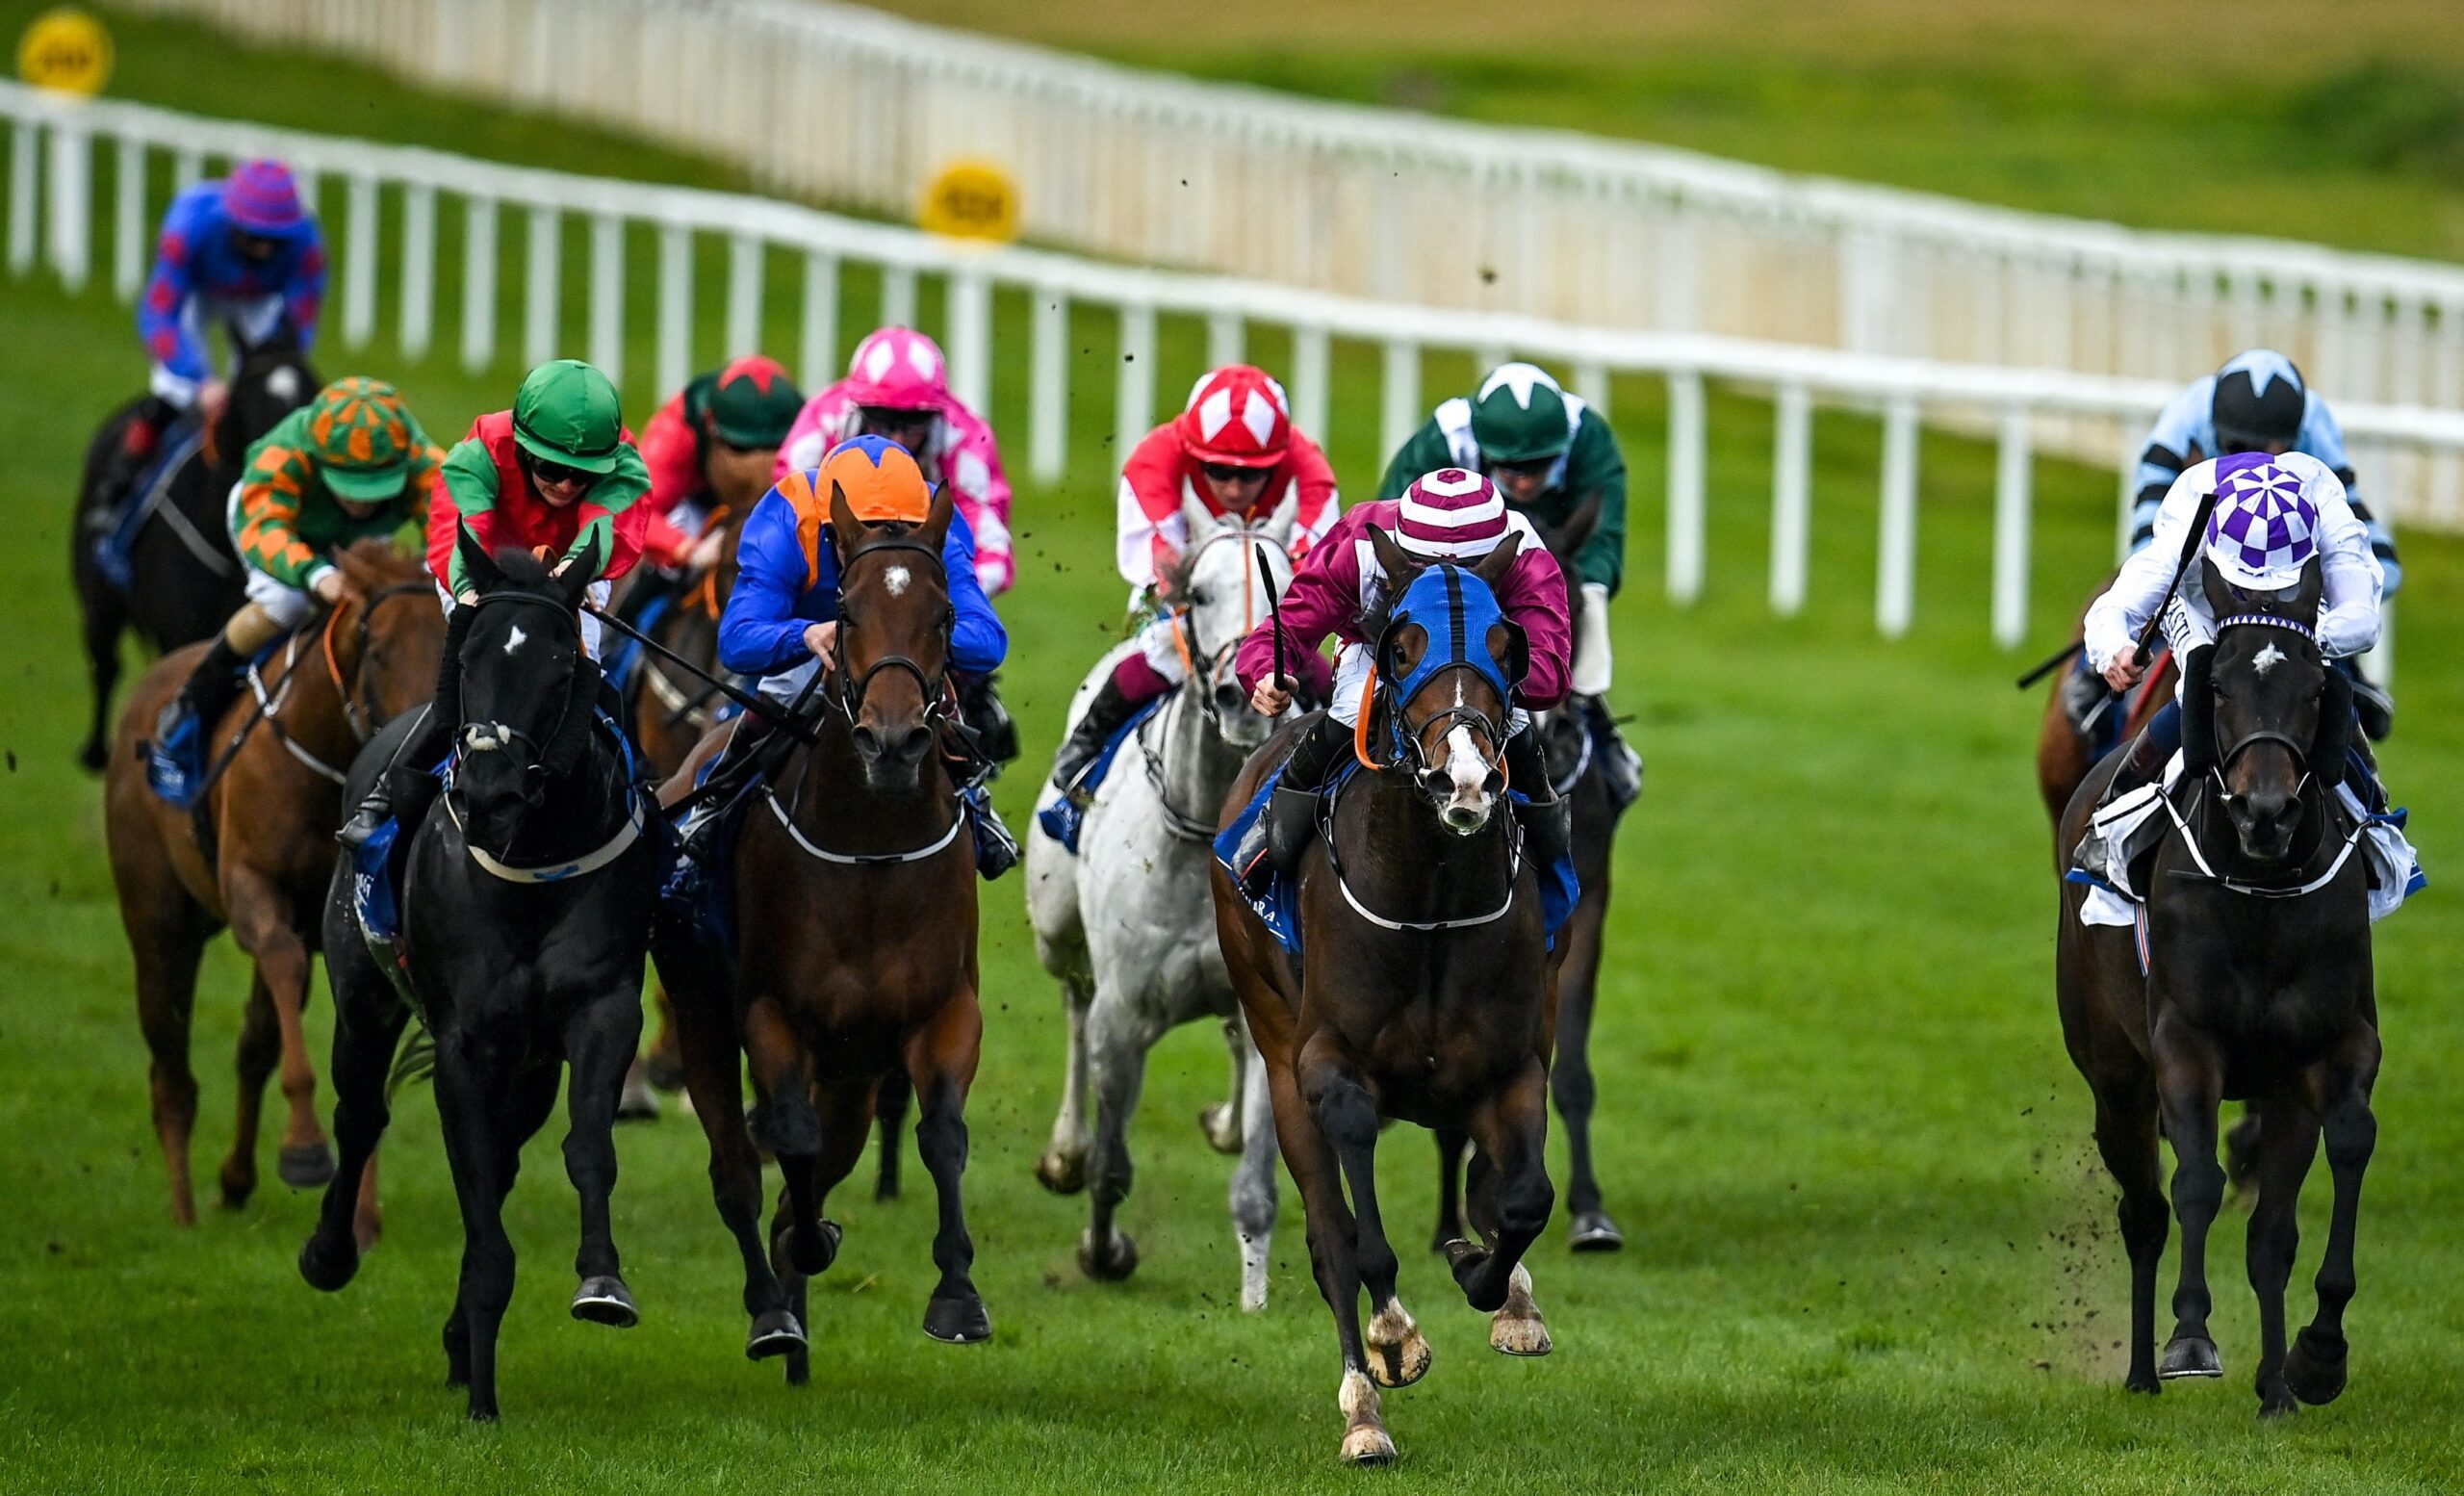 Seven weekends of horseracing on TG4 in March and April